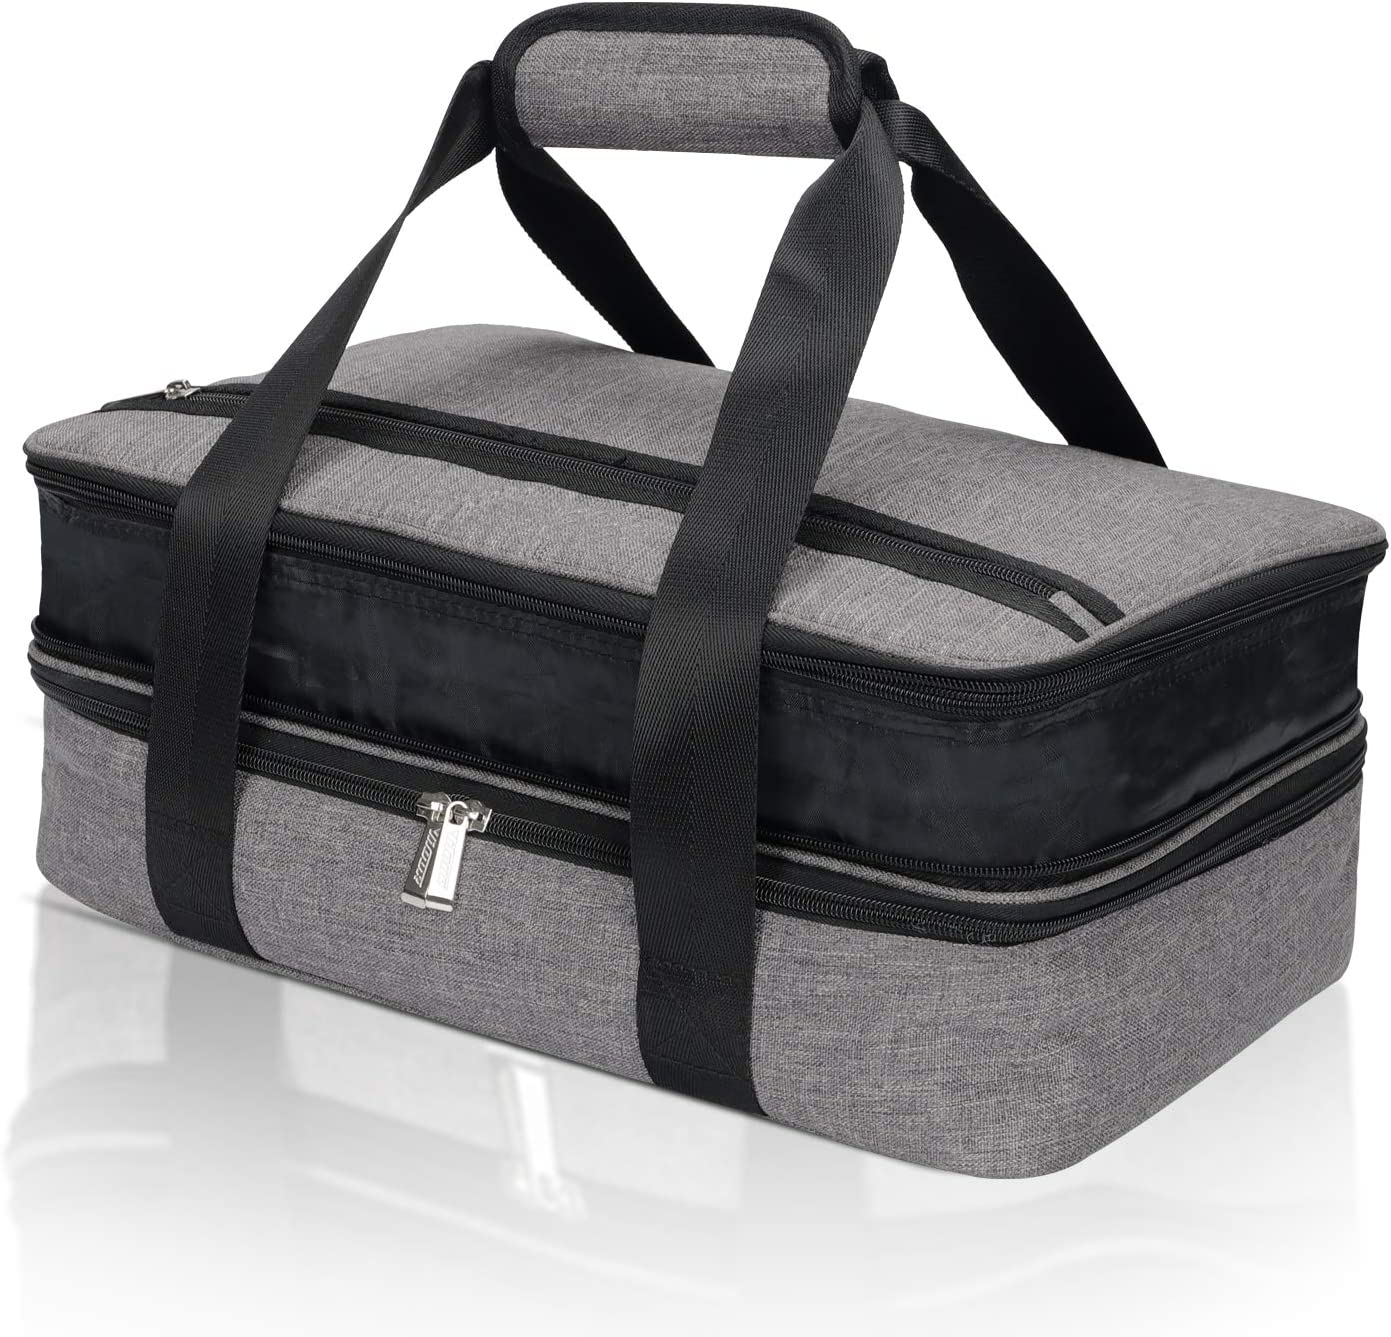 Insulated Double Casserole Carrier, Expandable Thermal Tote Bag keeps Hot or Cold Food, Casserole Dishes Travel Bag For Picnic Potluck Beach Day Trip Camping Hiking,15.7 x 9.8 x 4.3 inch